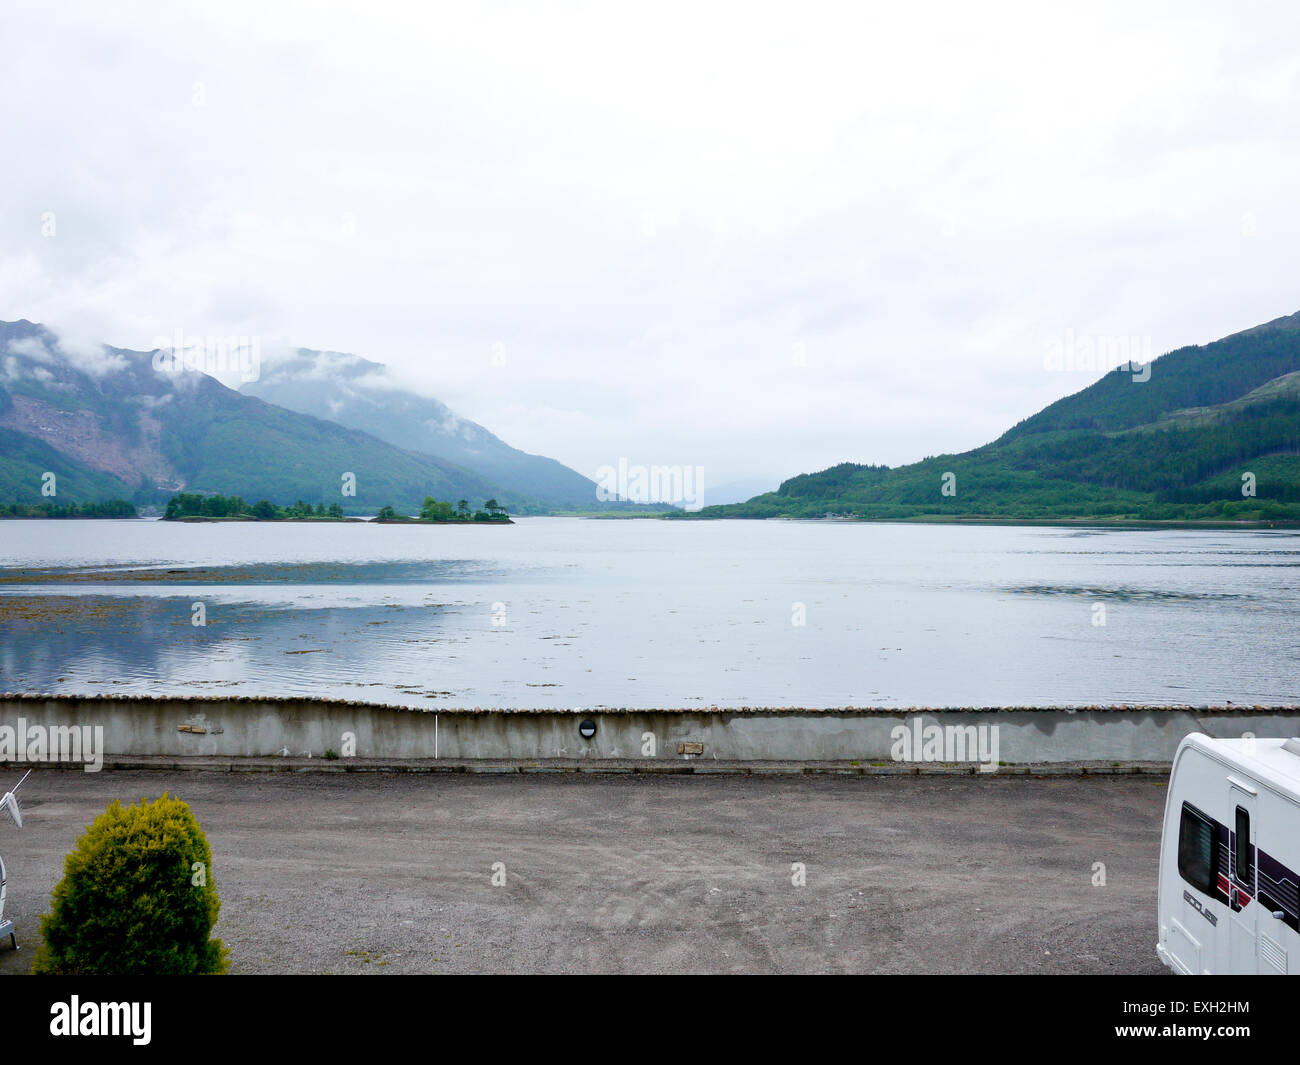 Looking across Loch Leven and  mist covered mountains from Invercoe,Glencoe,Argyll, Scotland, UK. - Stock Image